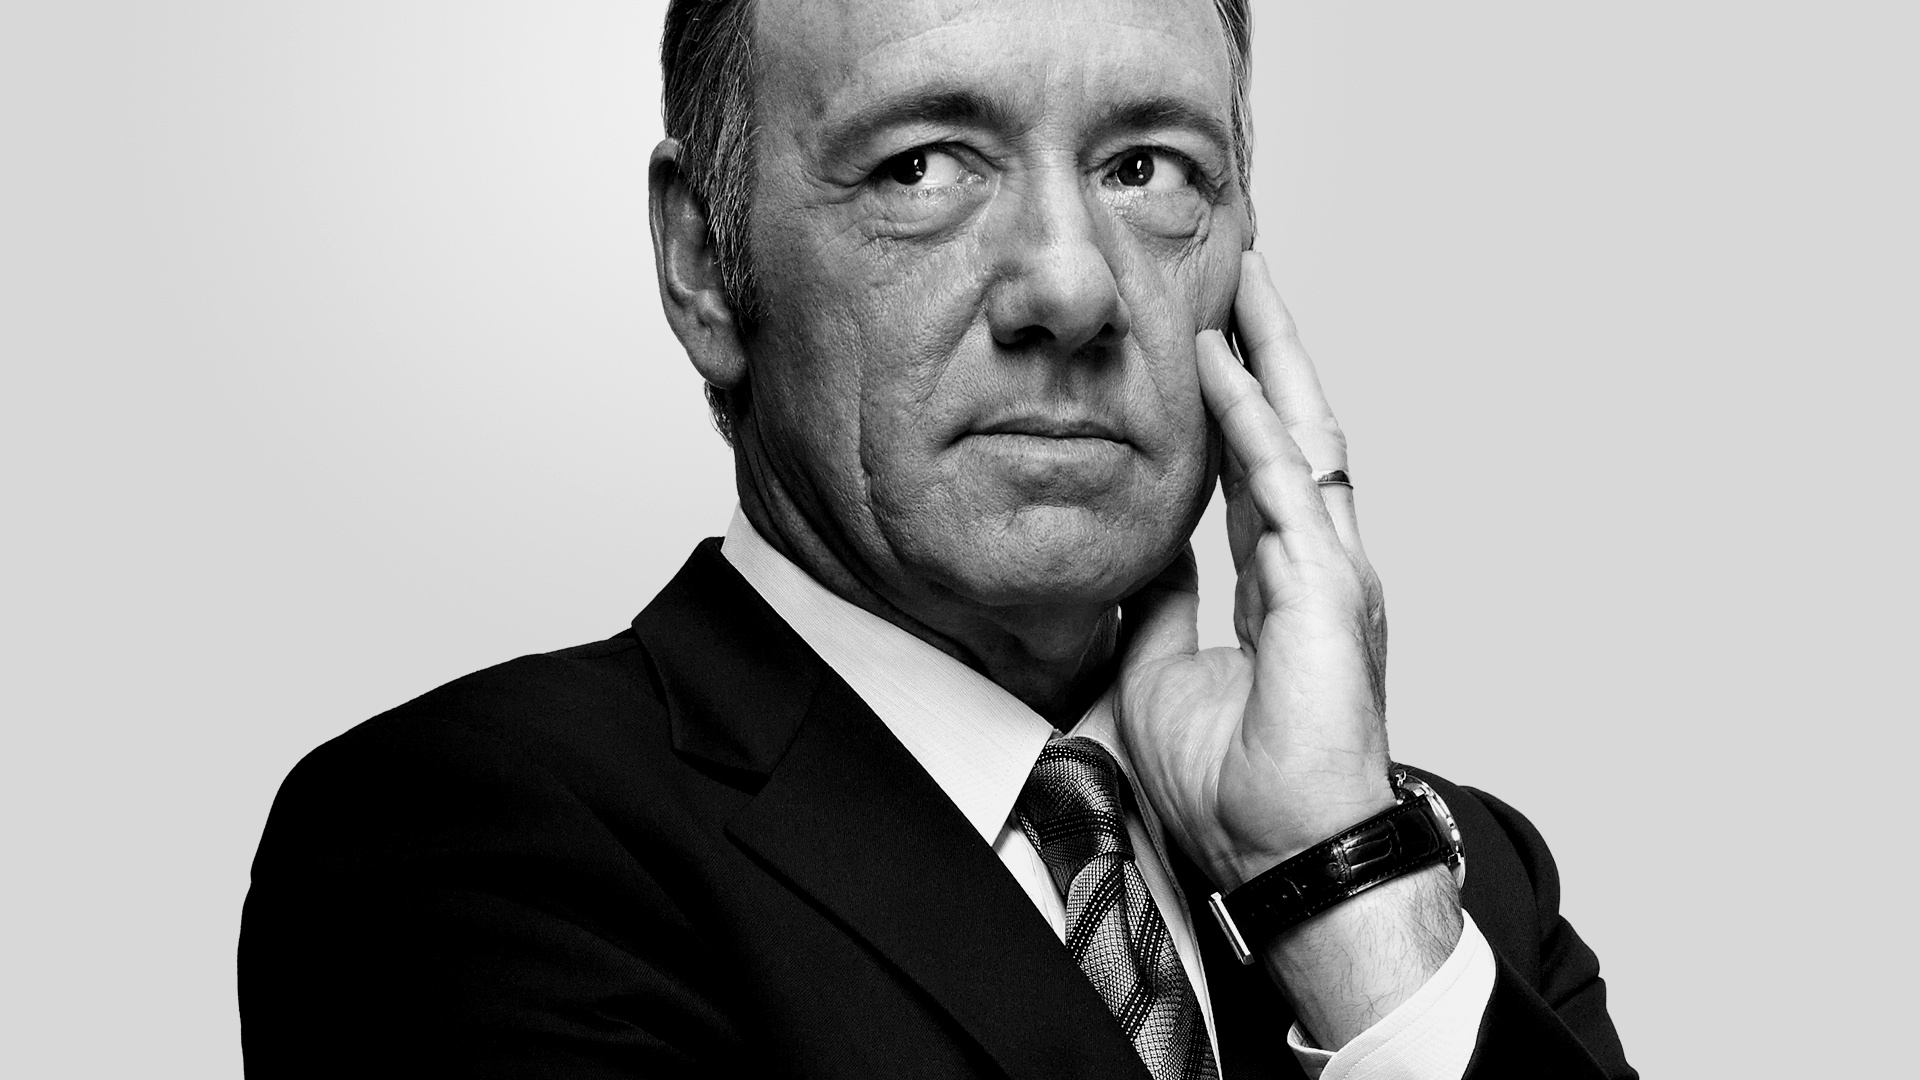 Kevin spacey talks house of cards season 3 and beyond